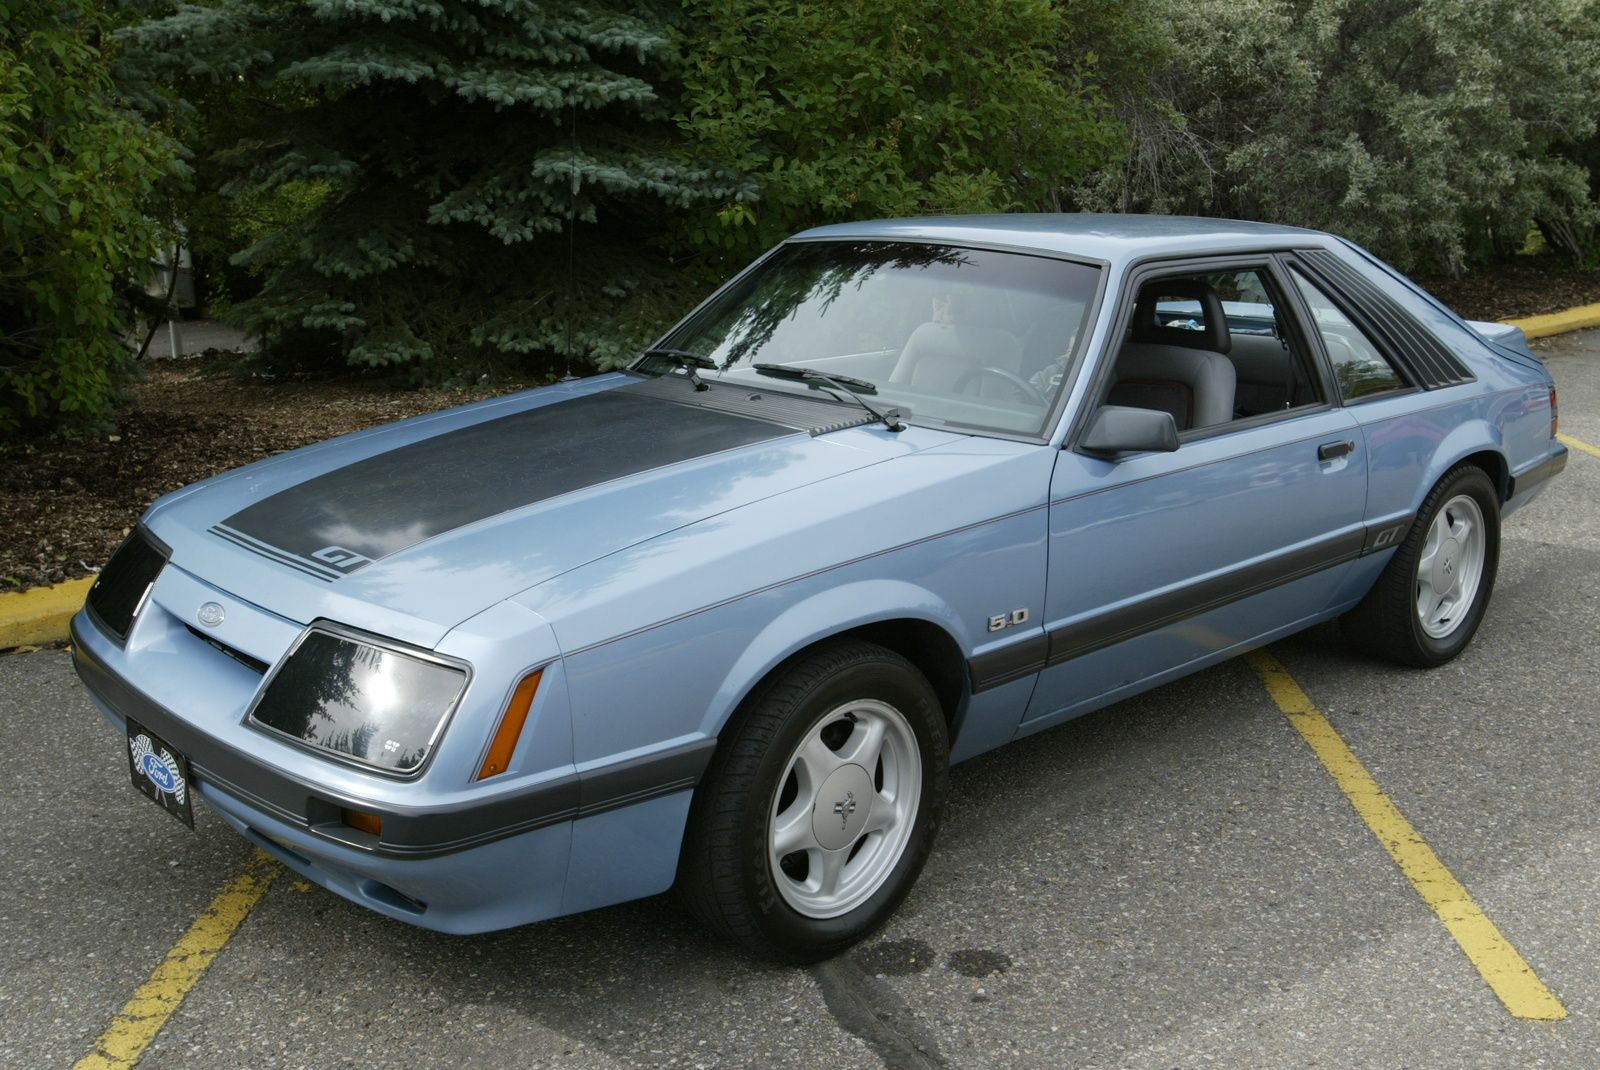 1985 mustang picture of 1985 ford mustang gt exterior